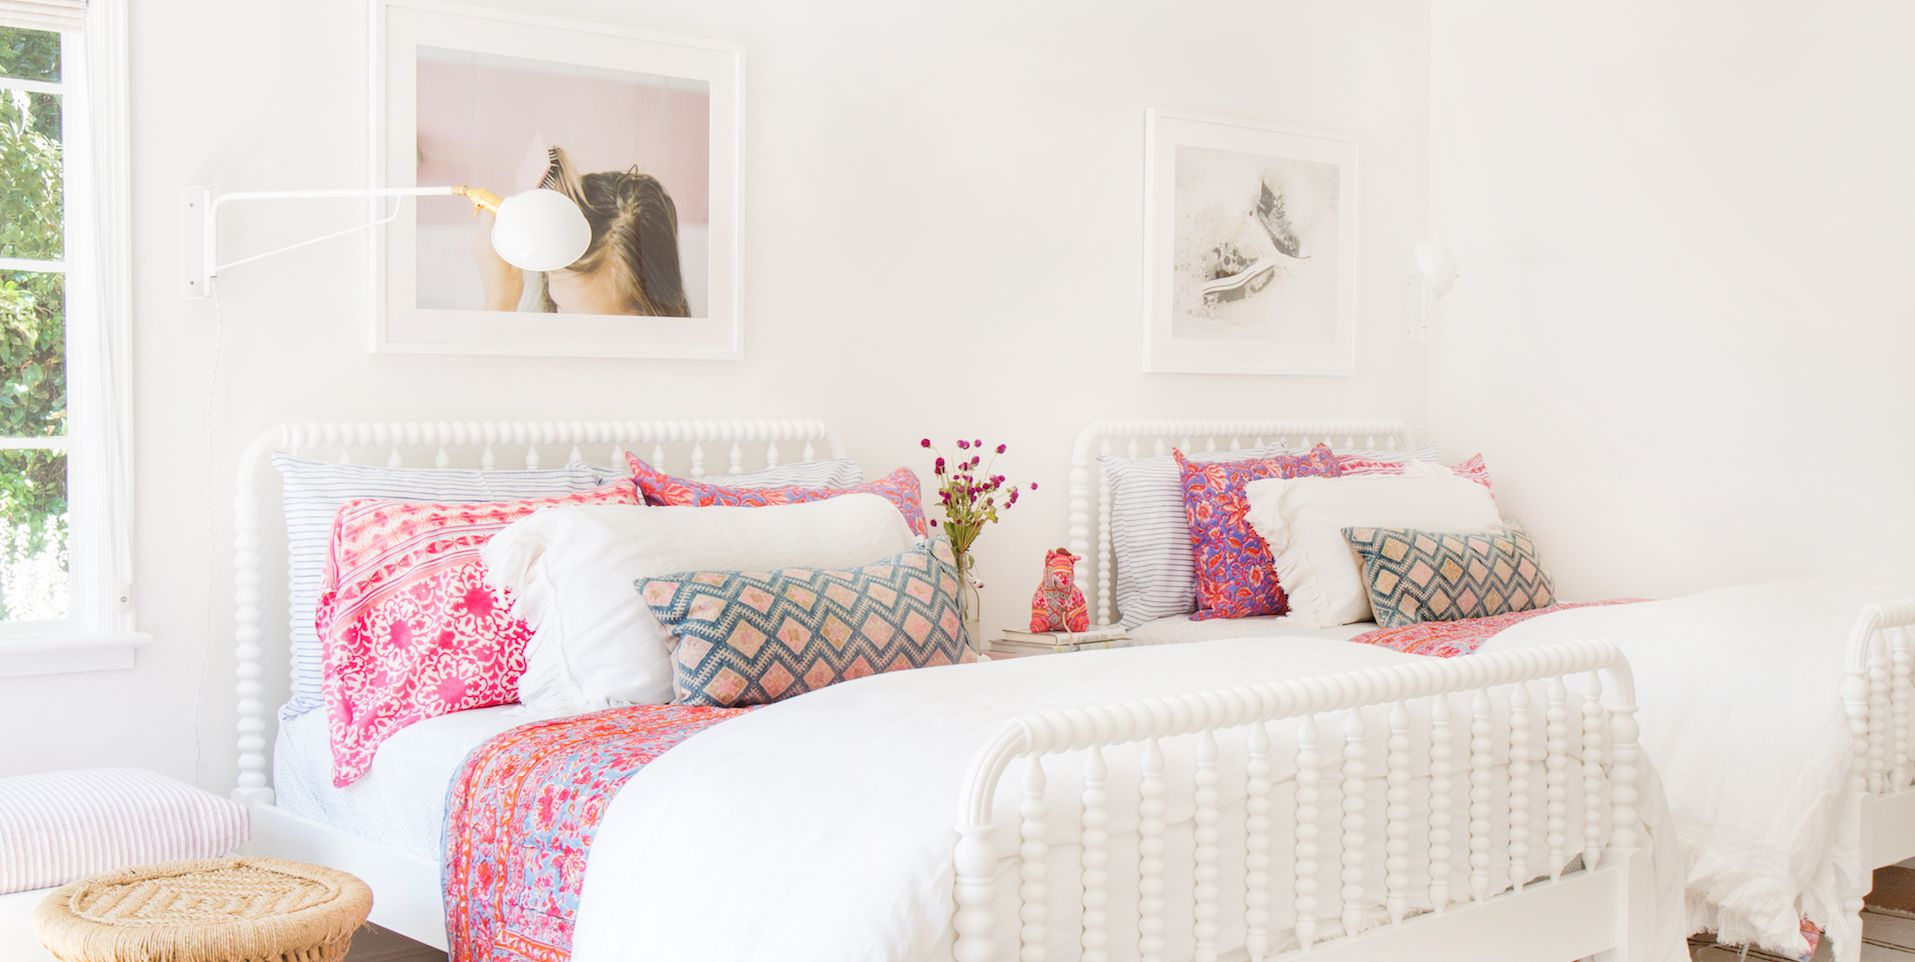 Pink Bedroom Ideas That Can Be Pretty And Peaceful Or: Cool Teenage Room Decor For